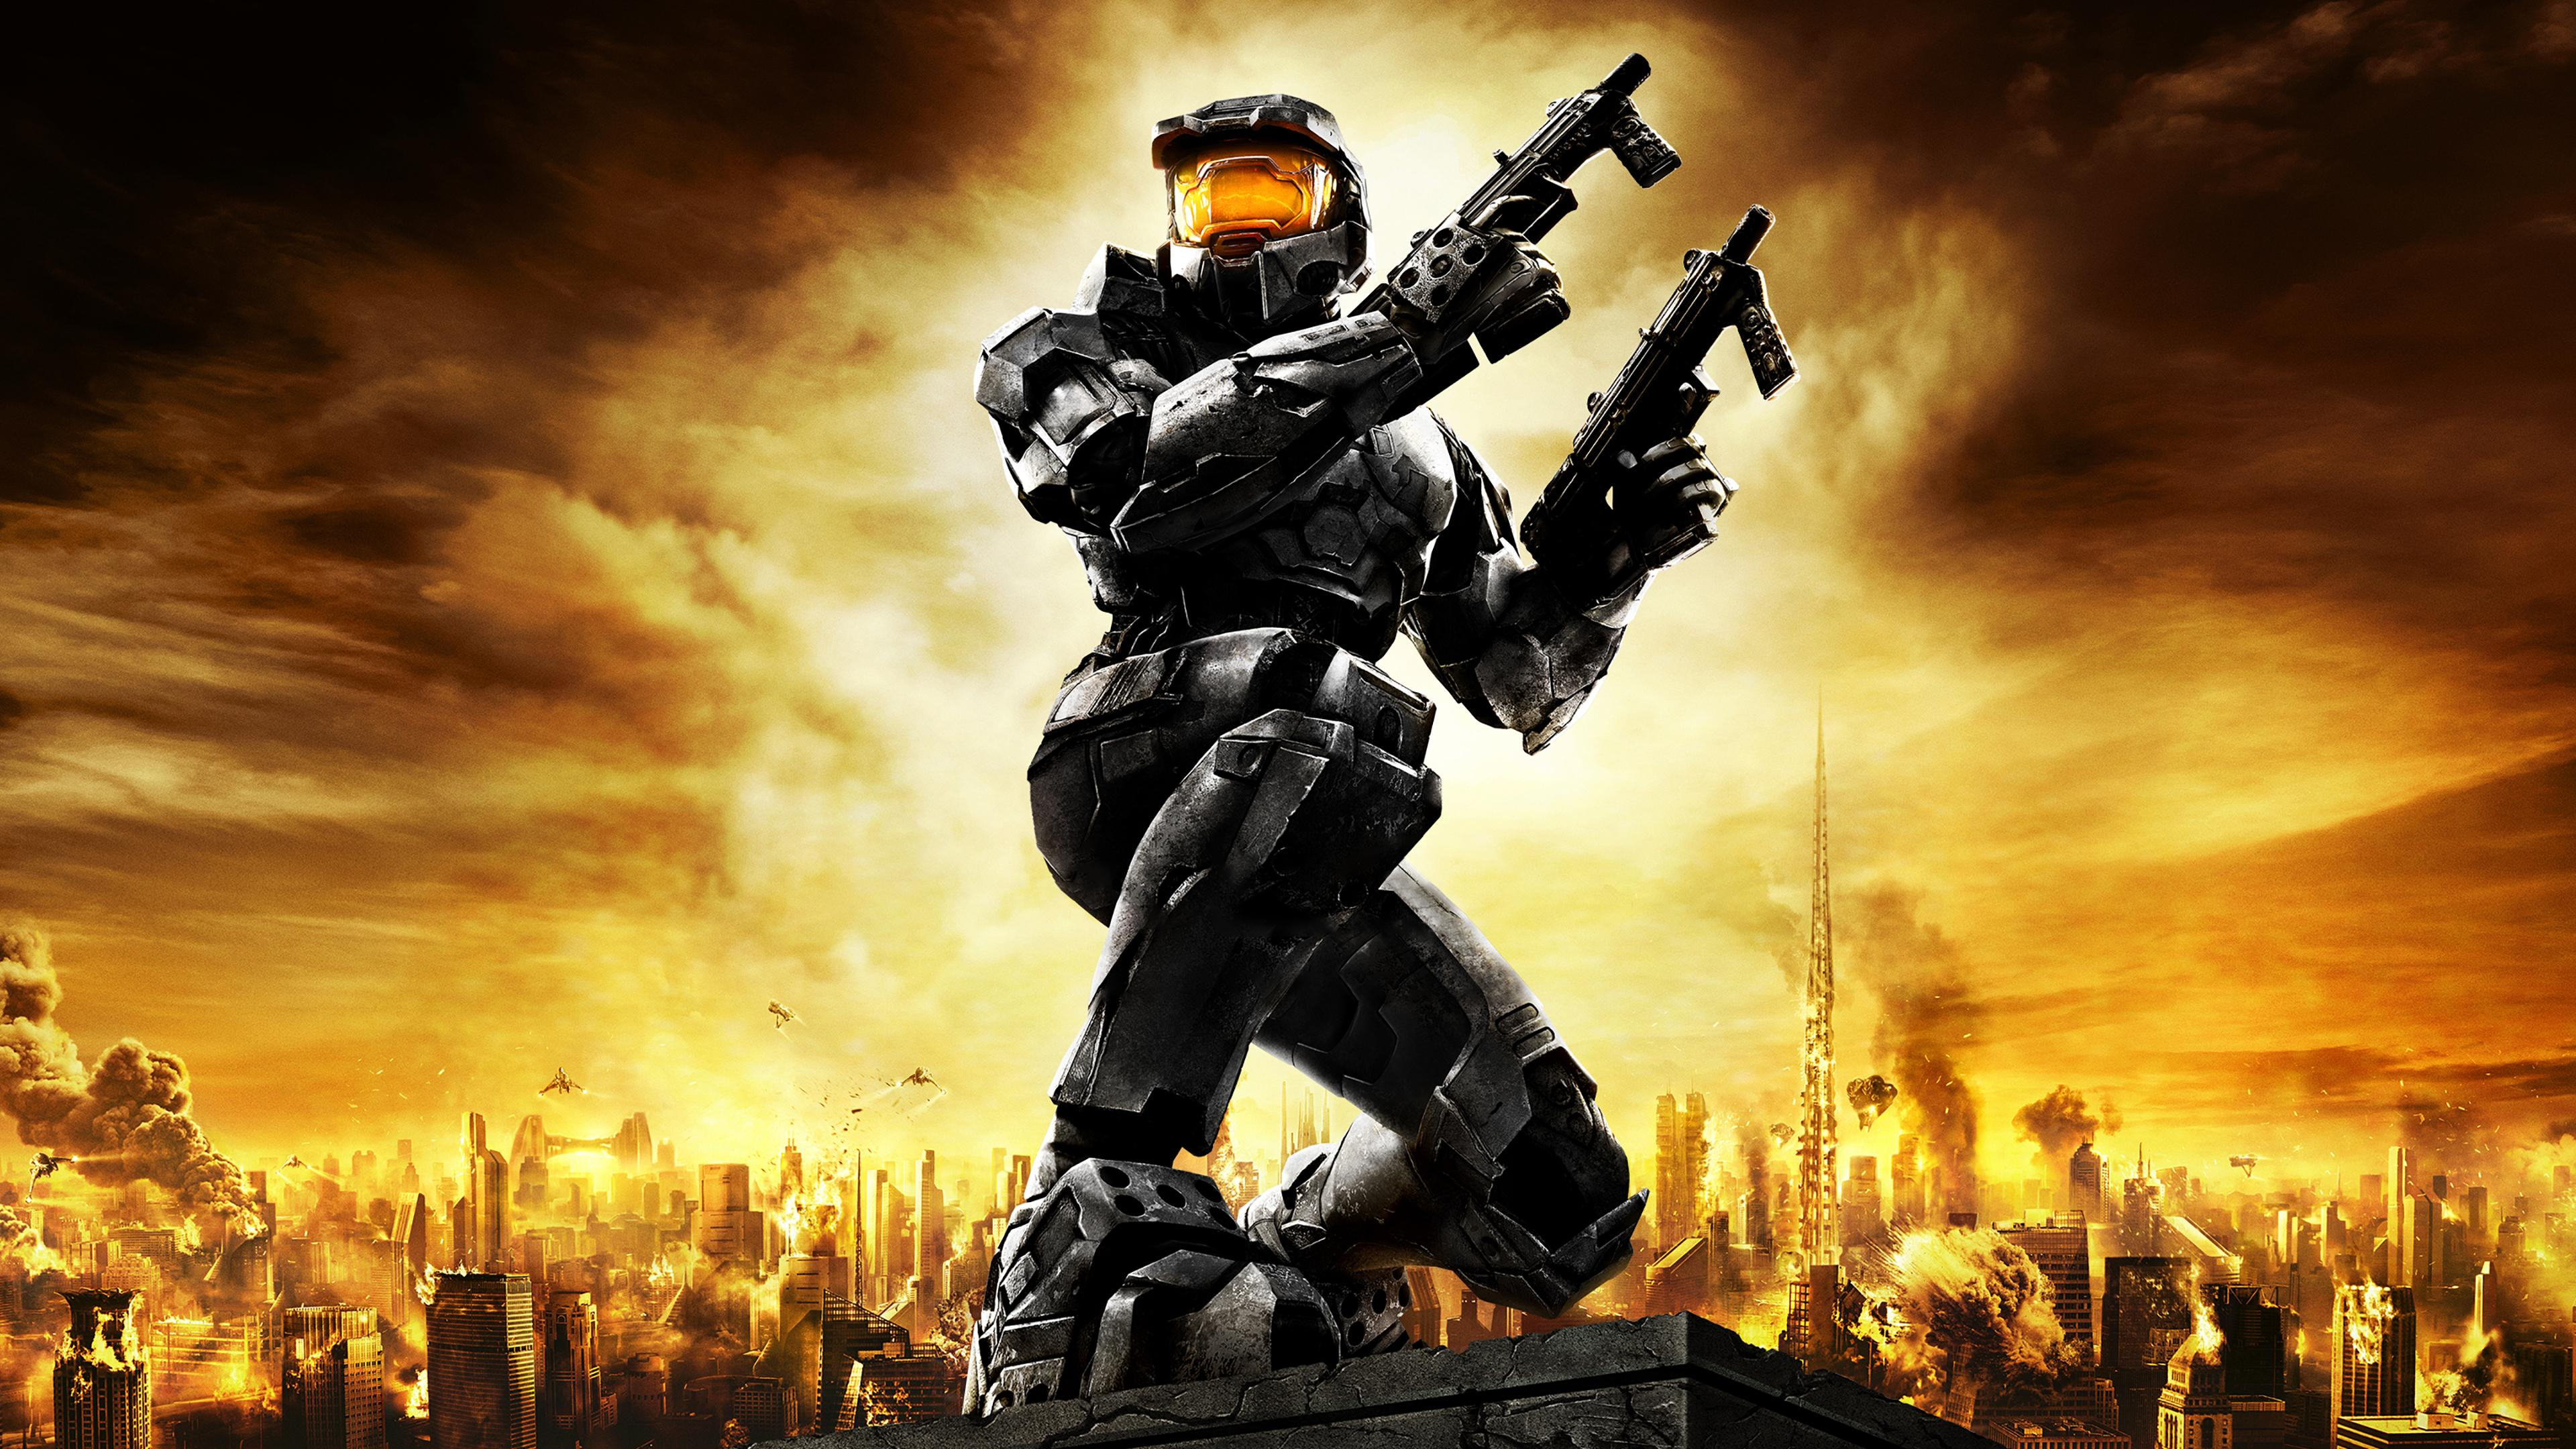 Halo 2 Wallpapers Top Free Halo 2 Backgrounds